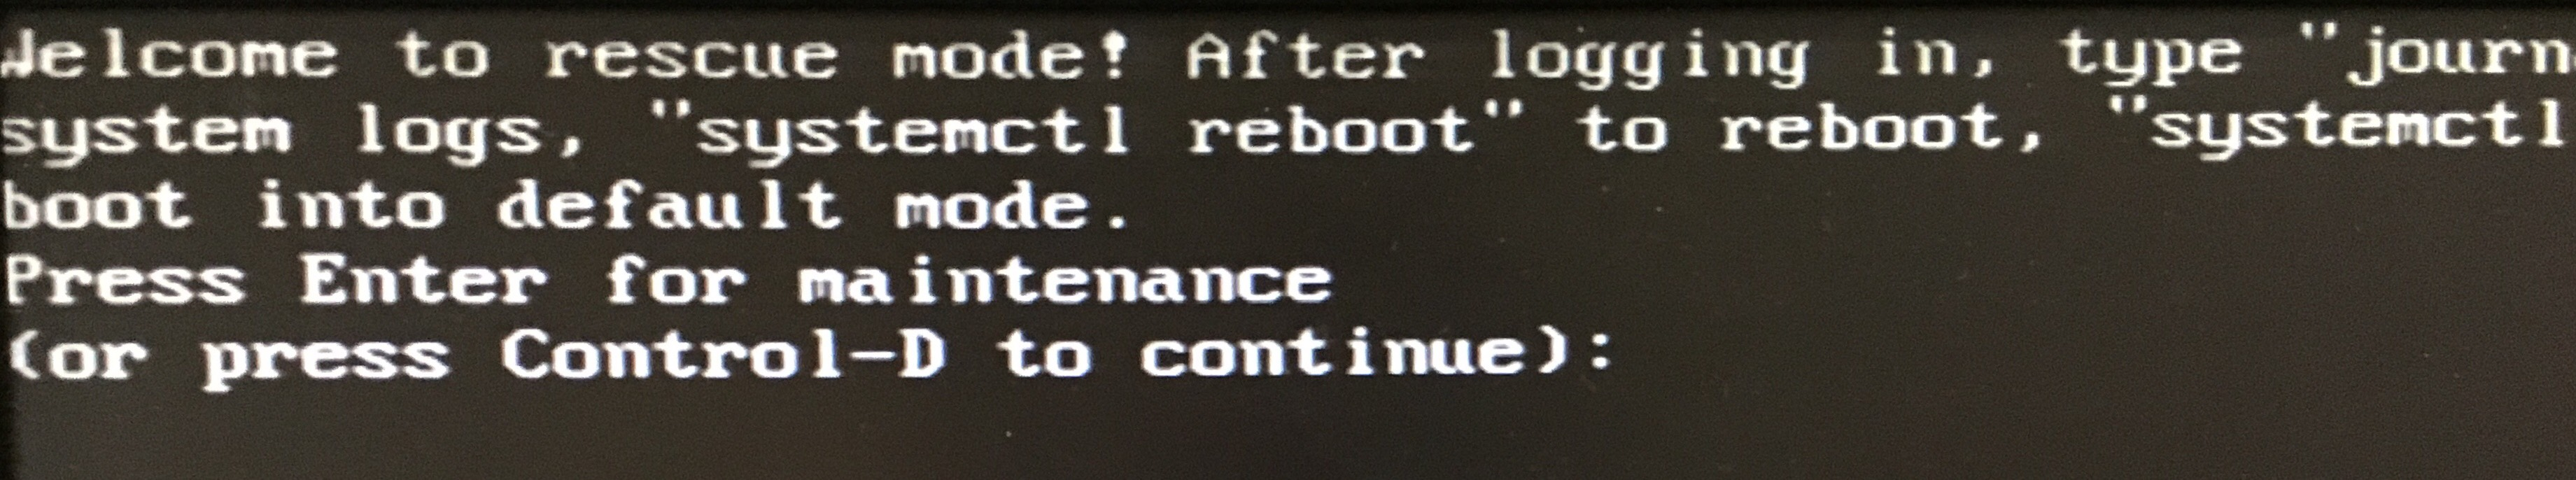 Lambda Quad: boot stuck on purple Ubuntu loading screen - Technical